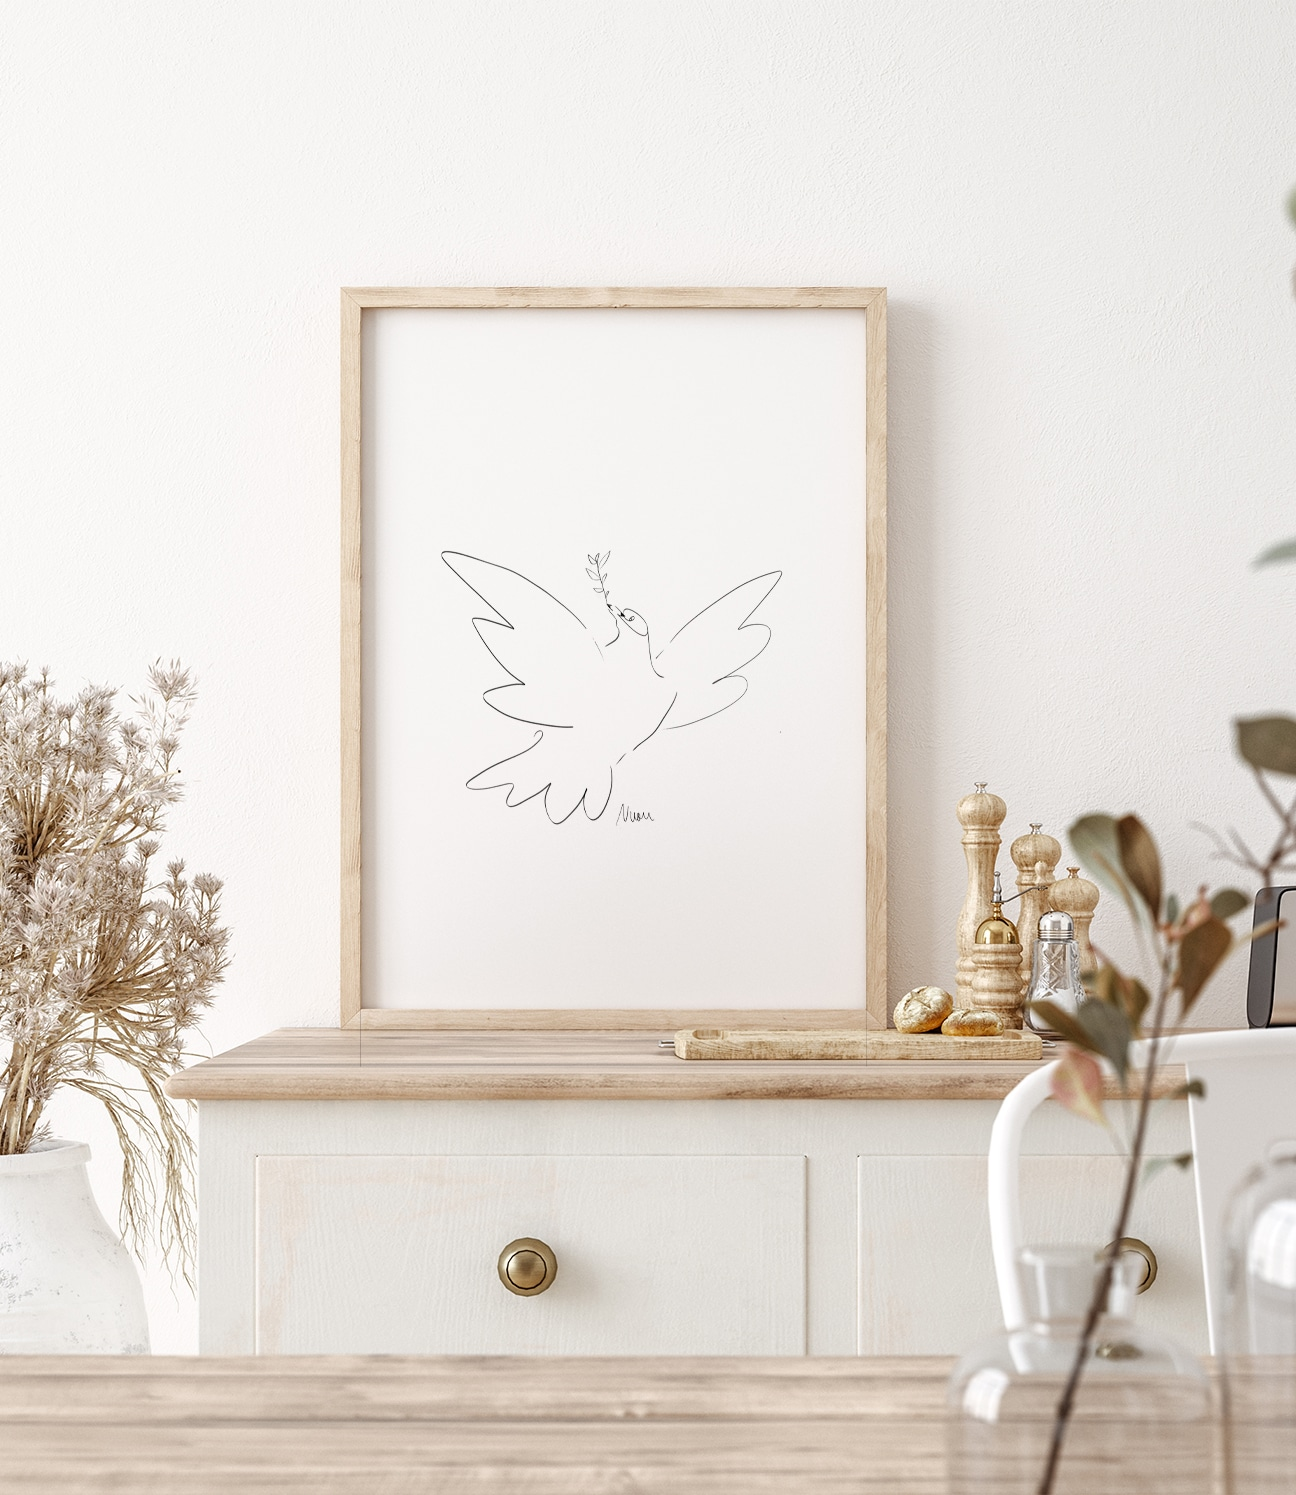 Dove of Picasso in Line Art collection is part of a modern triptych inspired by Picasso's famous 'Dove of Peace'.